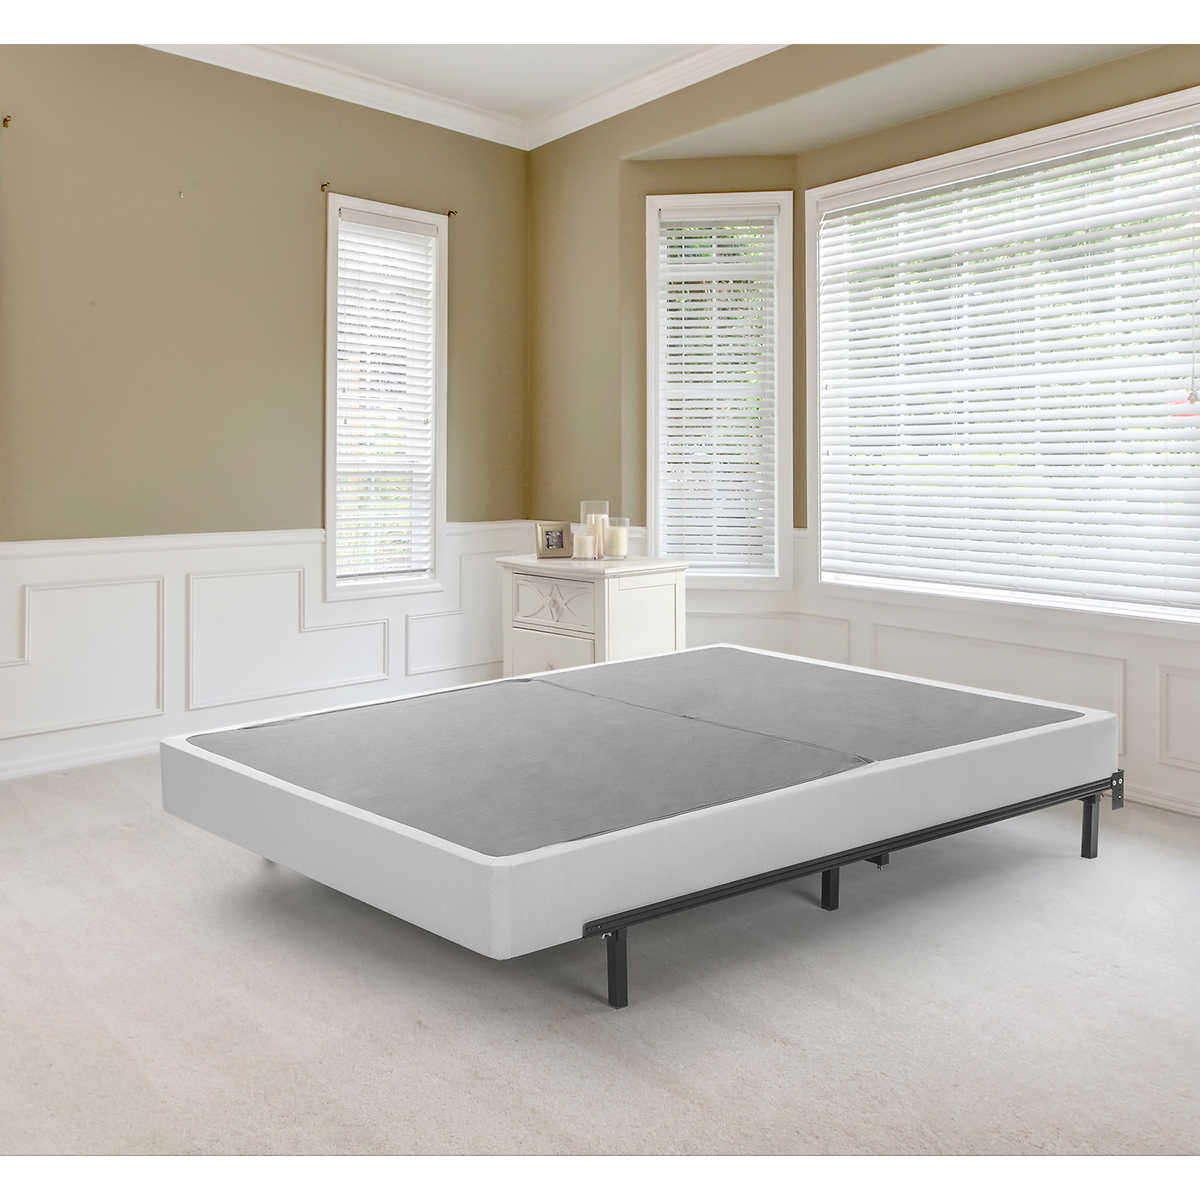 blackstone bifold 75 foundation king - Bed Frame For Boxspring And Mattress